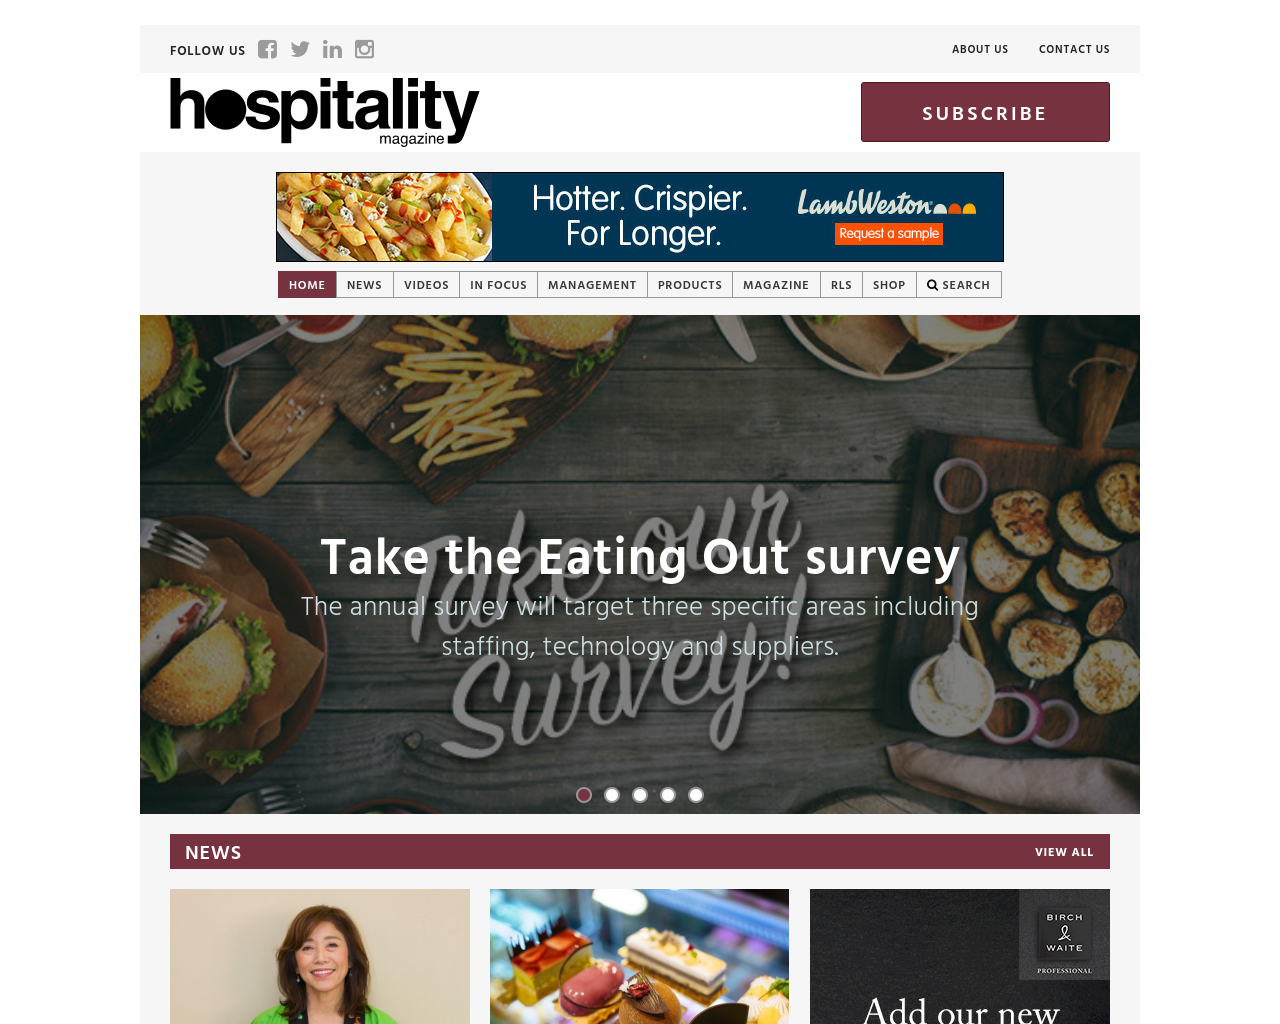 Gohospitality-Advertising-Reviews-Pricing